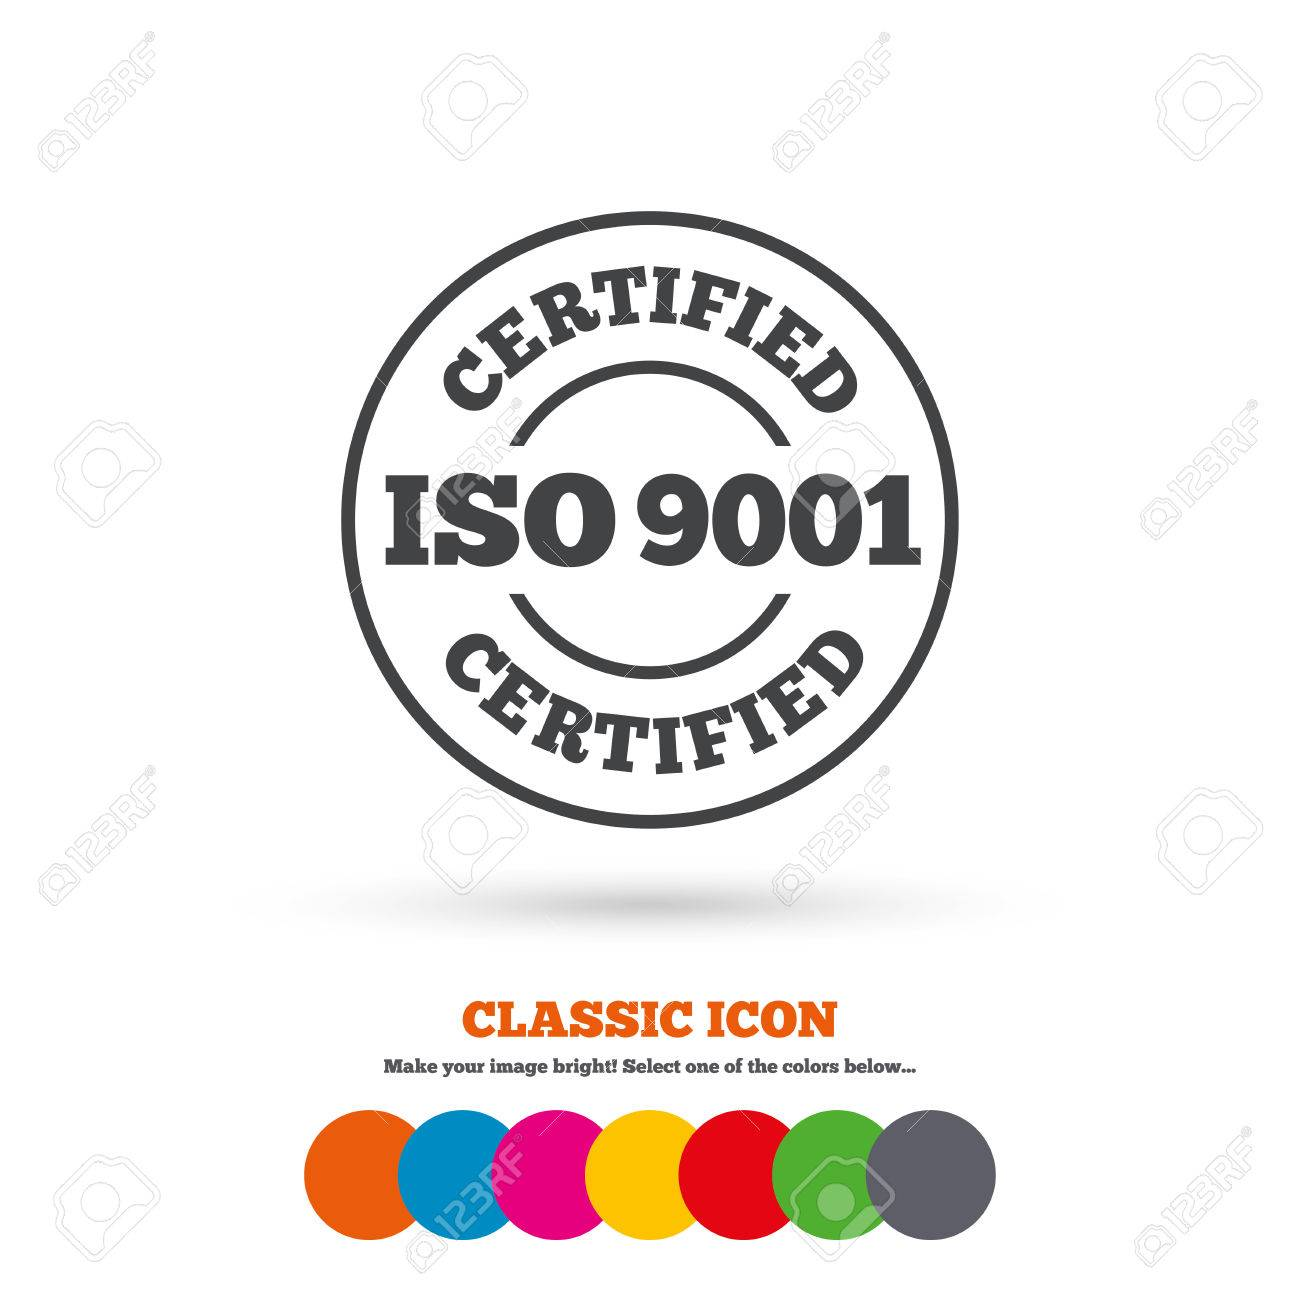 ISO 9001 Certified Sign Icon Certification Stamp Classic Flat Colored Circles